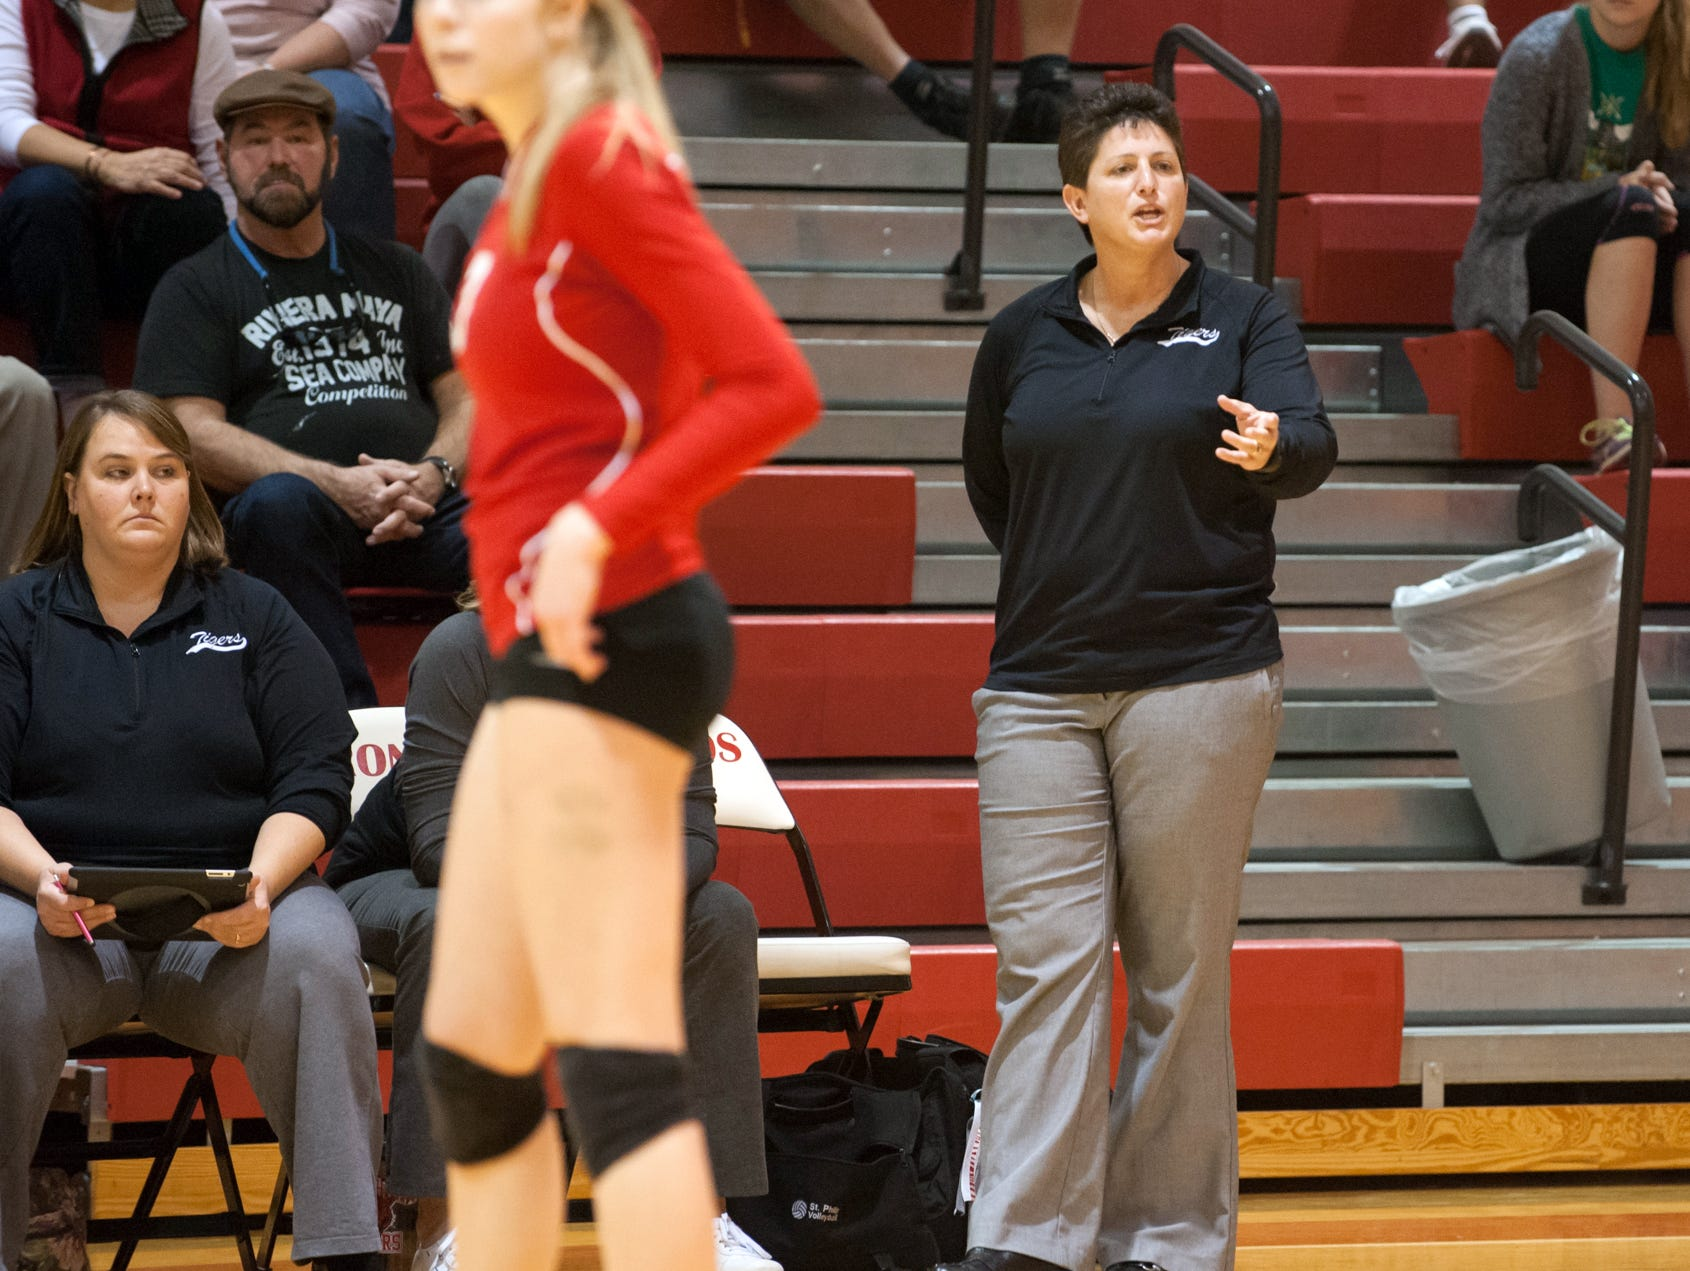 St. Philip head coach Vicky Groat talks to players during a break in action Tuesday night as they faced off against Marshall Academy.